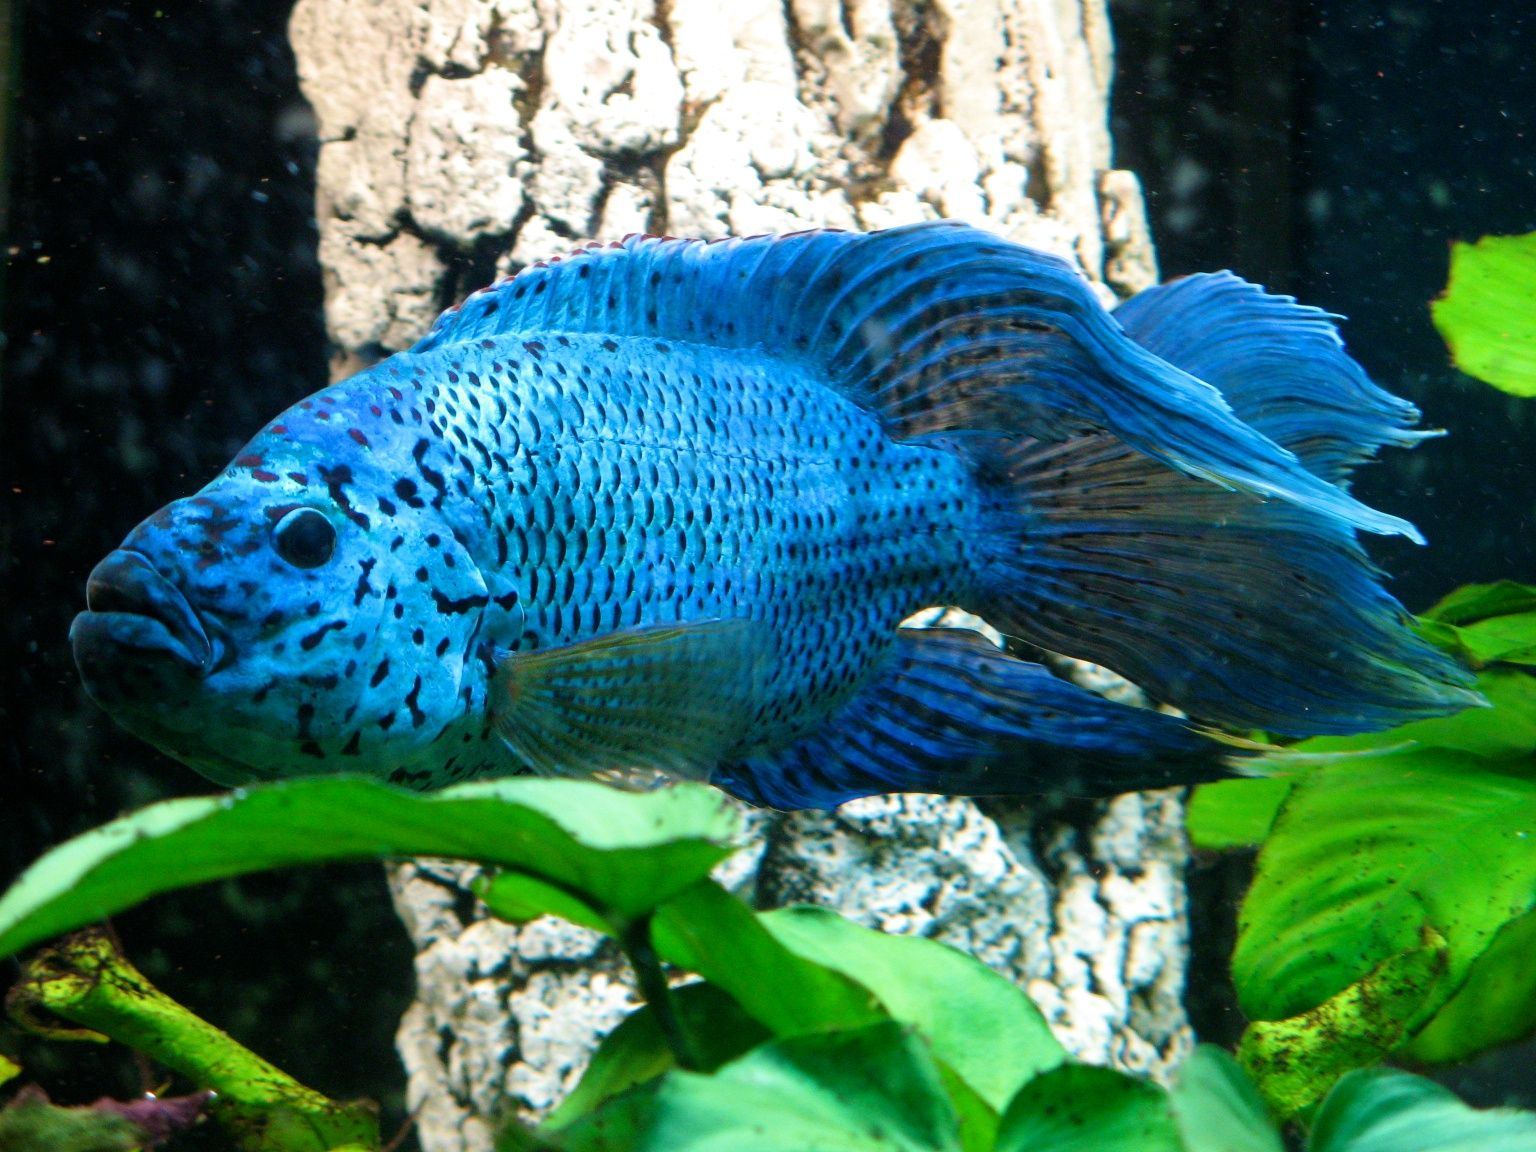 Male Electric Blue Jack Dempsey Cichlids Tropical Freshwater Fish Colorful Fish